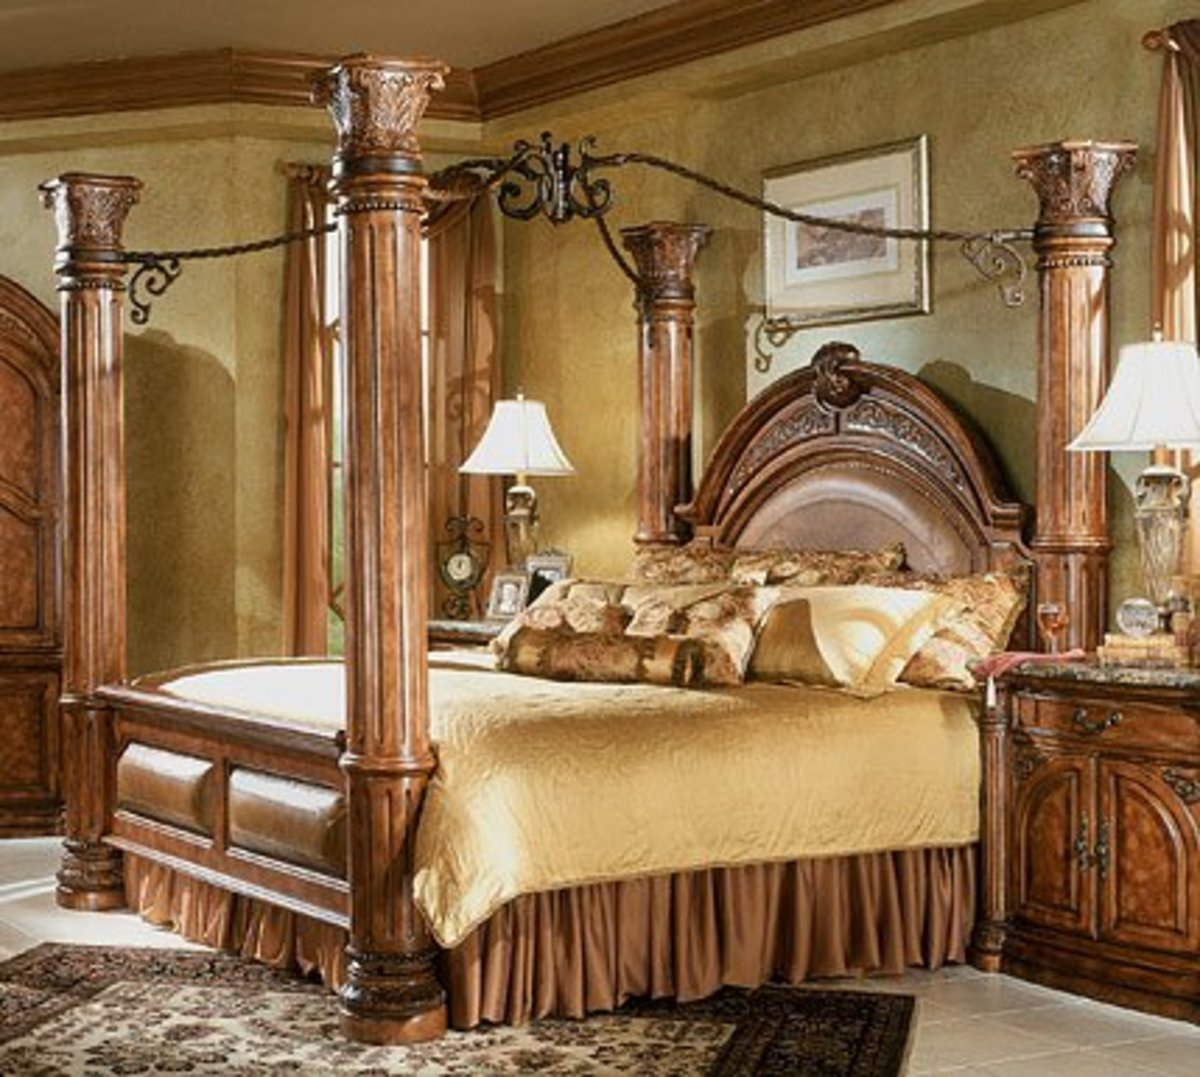 Monte Carlo Queen Poster Canopy Bed Medium Brown Finish $2,809.00